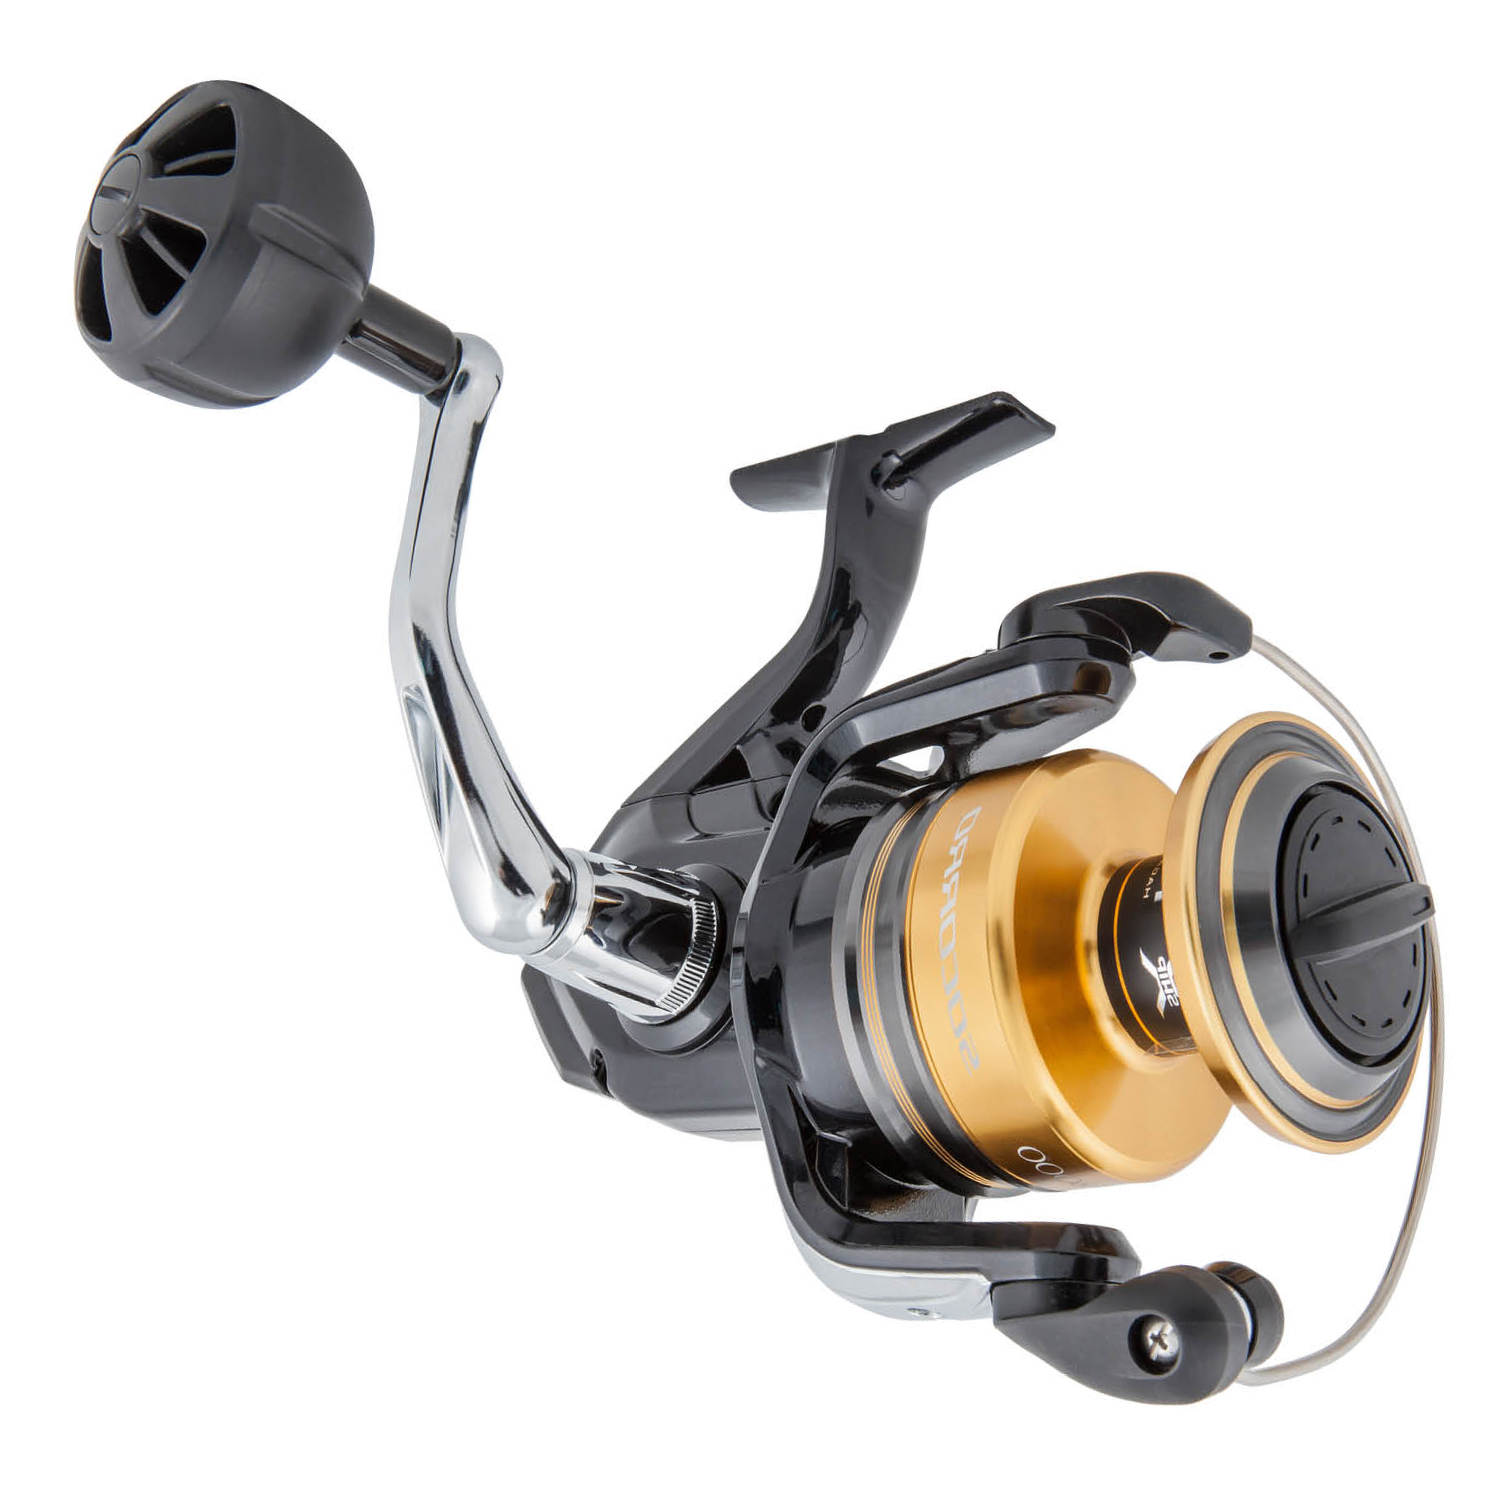 Top 8 Cheapest saltwater spinning reels in 2019